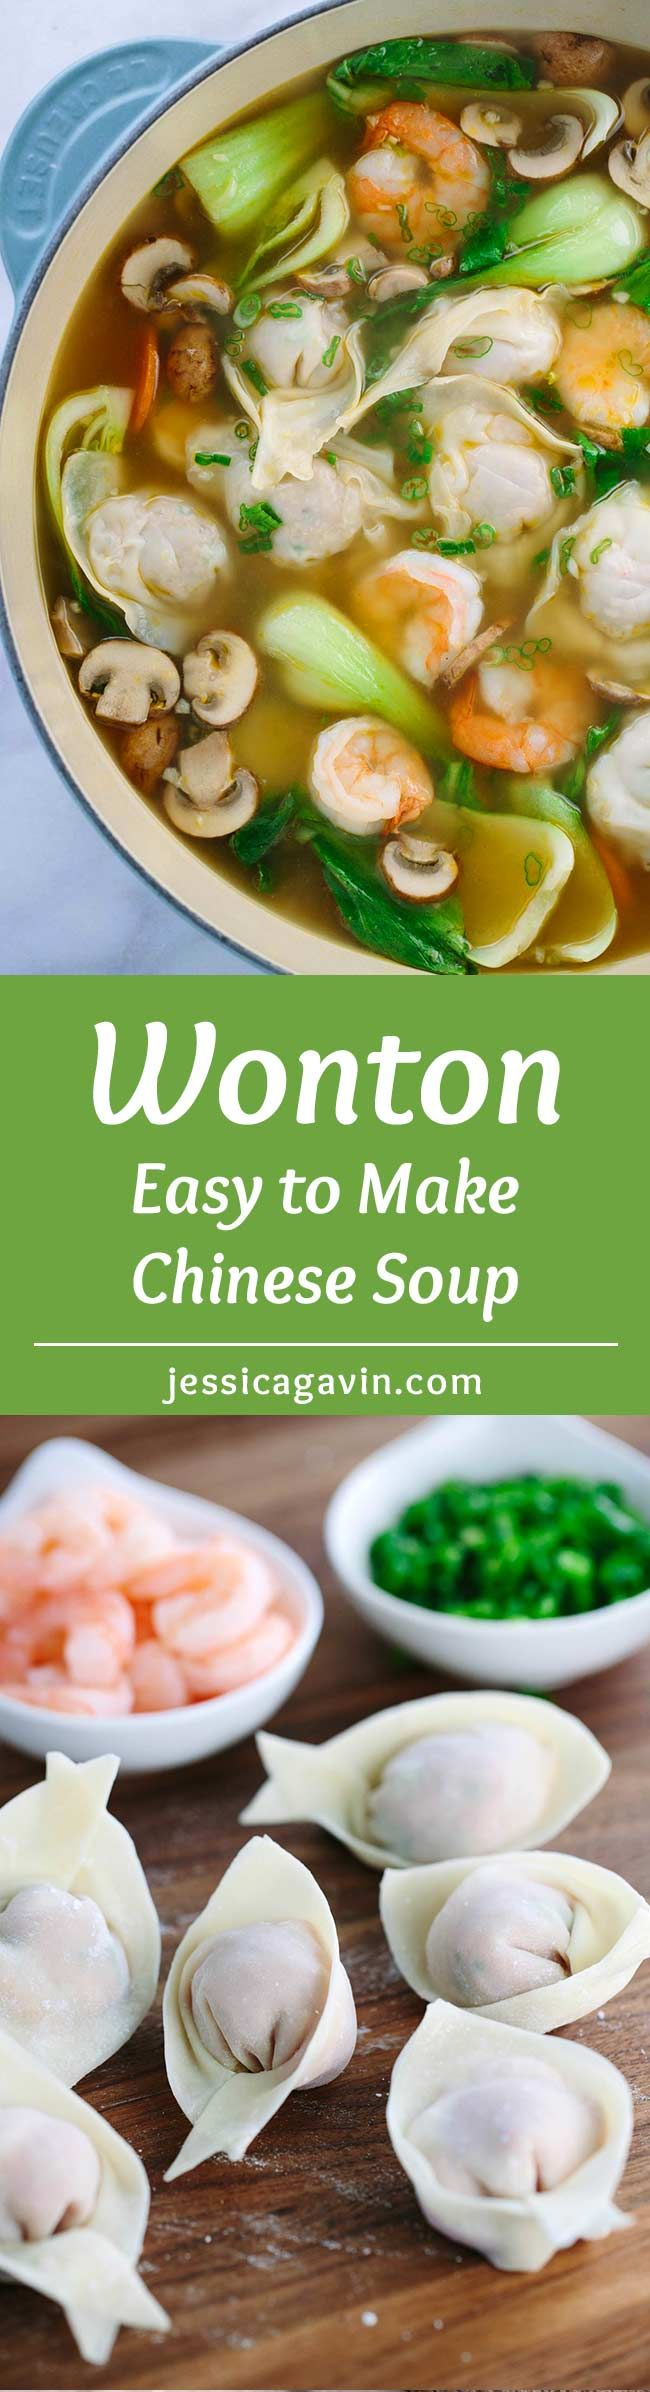 Easy Homemade Wonton Soup Recipe - Each hearty bowl is packed with plump pork dumplings, fresh vegetables and jumbo shrimp.